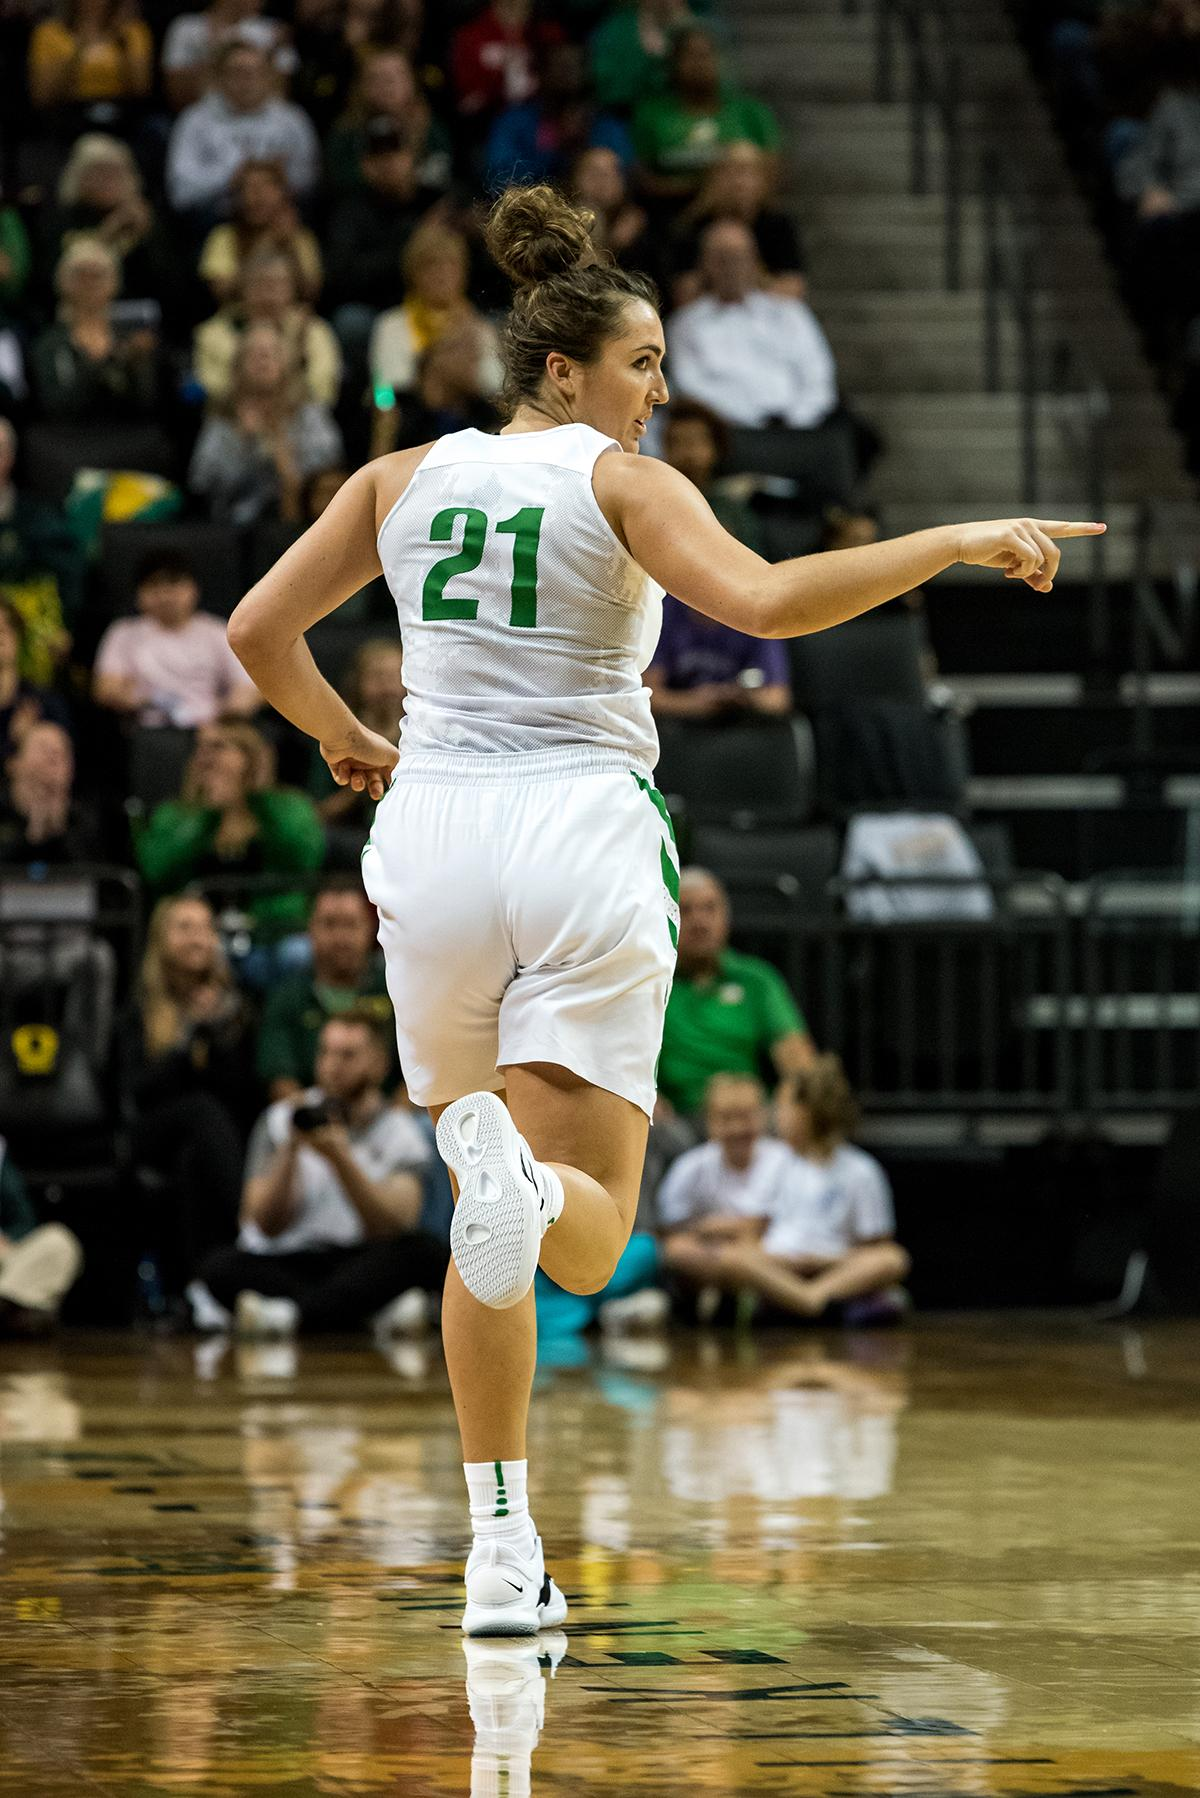 Oregon Ducks Erin Boley (#21) points to teammates after scoring during Saturdays game against Syracuse. The 3rd ranked University of Oregon Ducks defeated 18th ranked Syracuse Orange 75-73 in a close game at Matthew Knight Arena Saturday. Sabrina Ionescu lead the Ducks with a double double, scoring 26 points and 10 rebounds. The Ducks Ruthy Hebard also finished the game with a double double, scoring 11 points and 14 rebounds. The Ducks had four players score in the double digits with Erin Boley scoring 13 and Maite Cazorla finishing the game with 14 points. In a tight game, the ducks lead the Orange 48-44 at the half. Syracuse took the lead with 3 minutes left in the game, but a 3-pointer by Ducks Erin Boley with 51 seconds left in the game would help the Ducks take the lead for the remainder. Oregon is now 2-0 on the season. The Ducks travel to Utah State Wednesday November 14th before returning to Matthew Knight Arena Sunday November 18th to face Buffalo. Photo by Jeff Dean